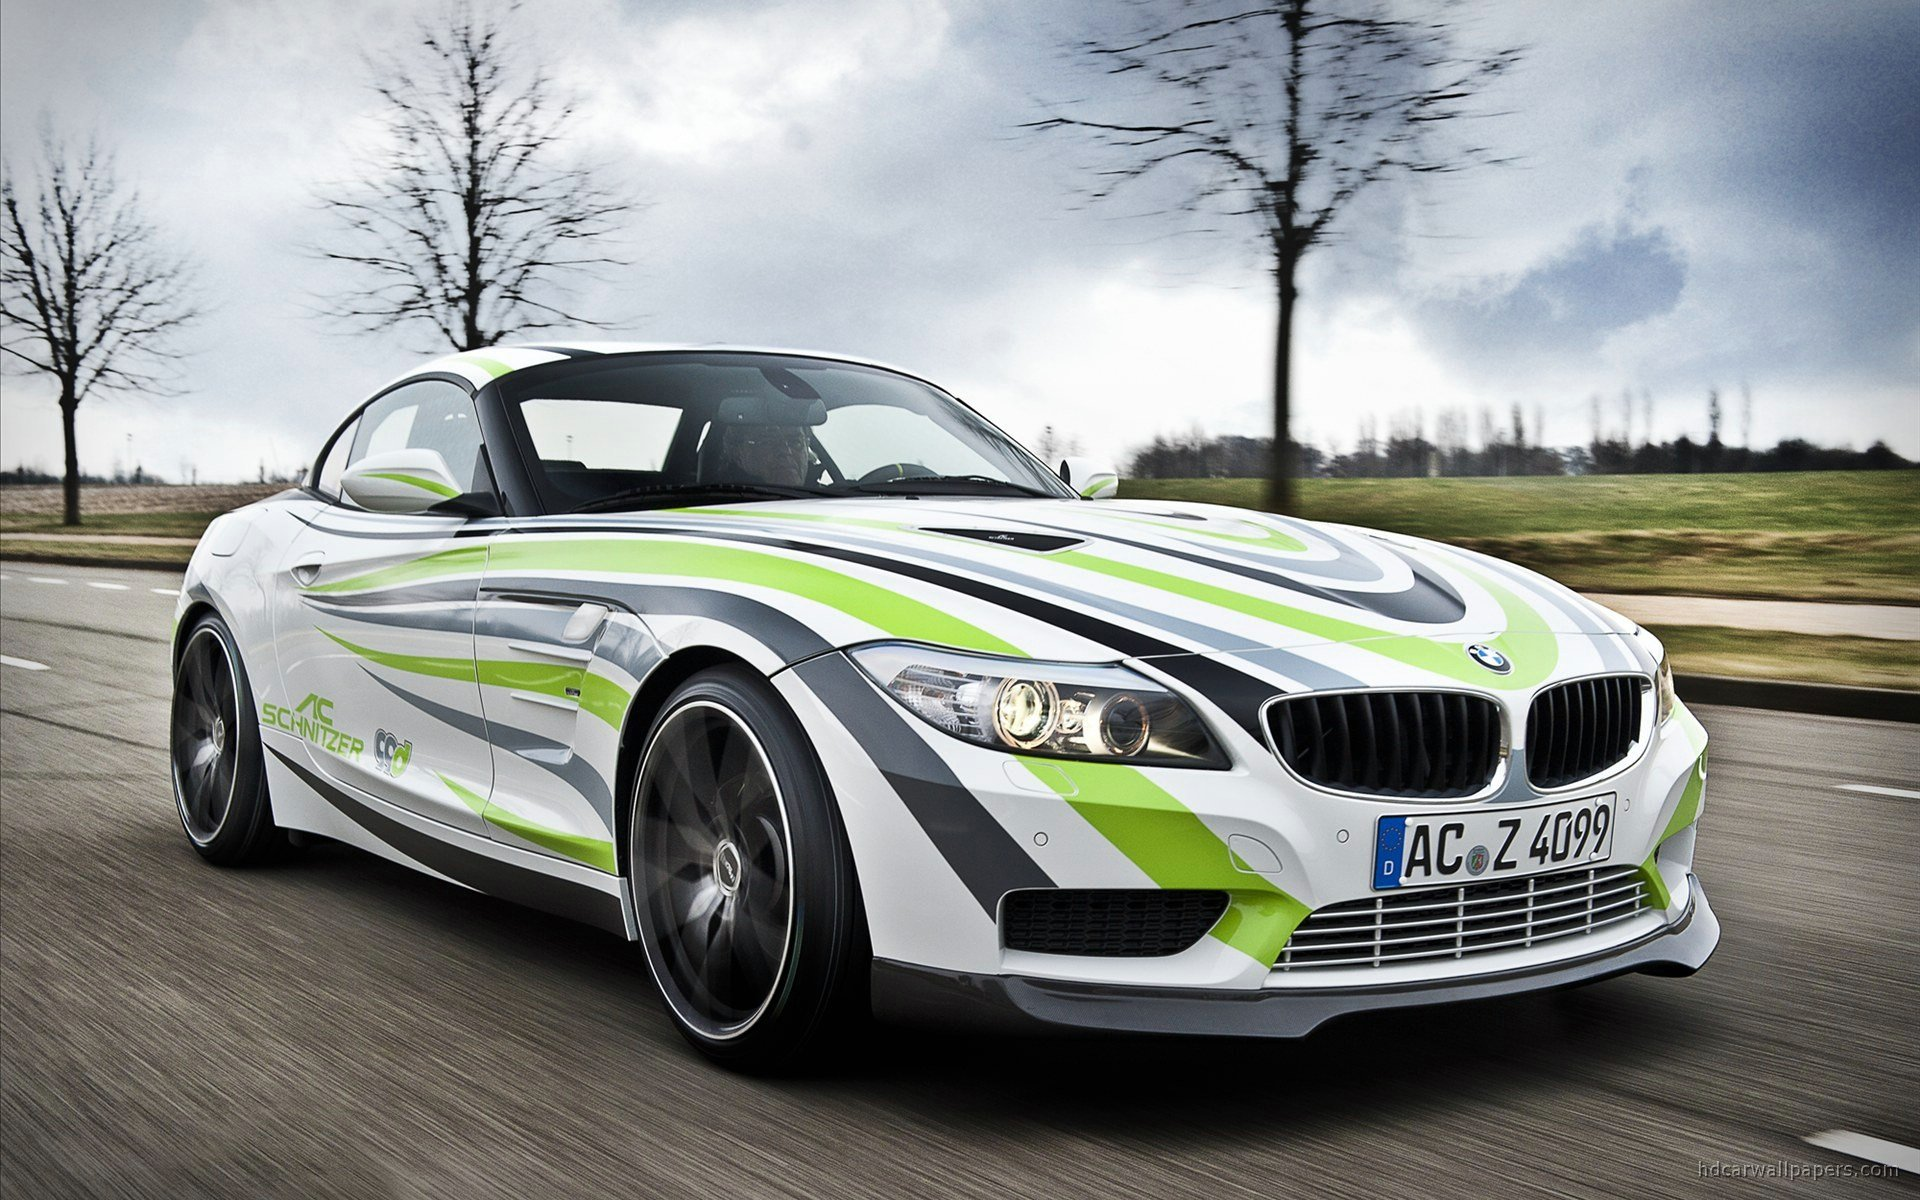 Latest 2011 Bmw Concept Car Wallpaper Hd Car Wallpapers Id 1930 Free Download